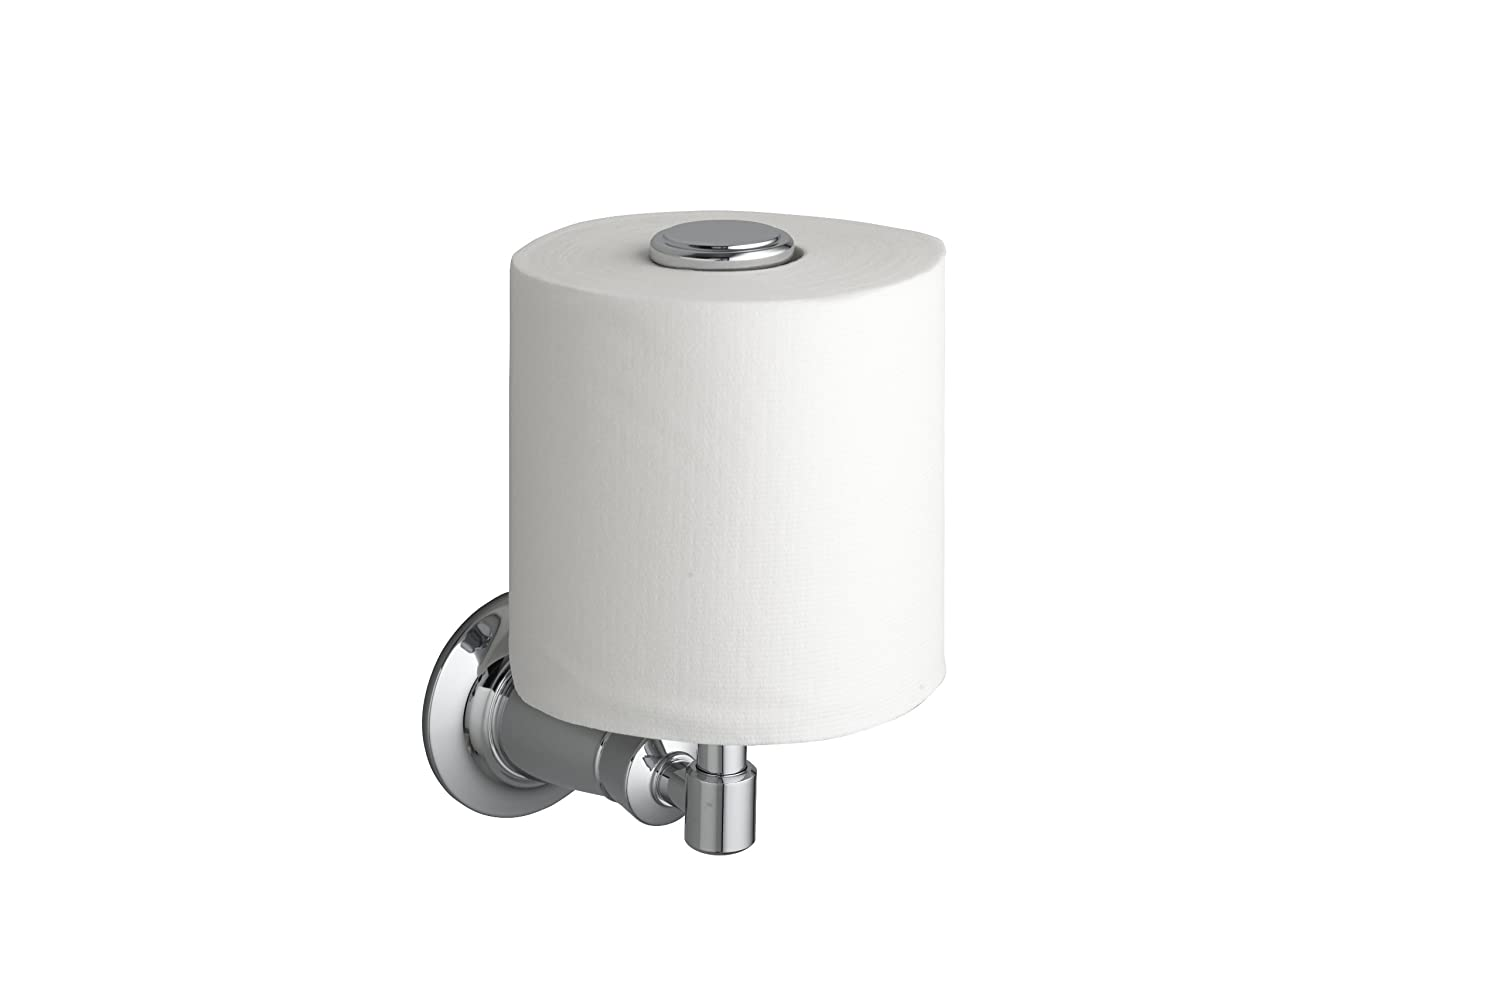 Toilet Paper Holder : Kohler k 11056 cp archer vertical toilet tissue holder polished